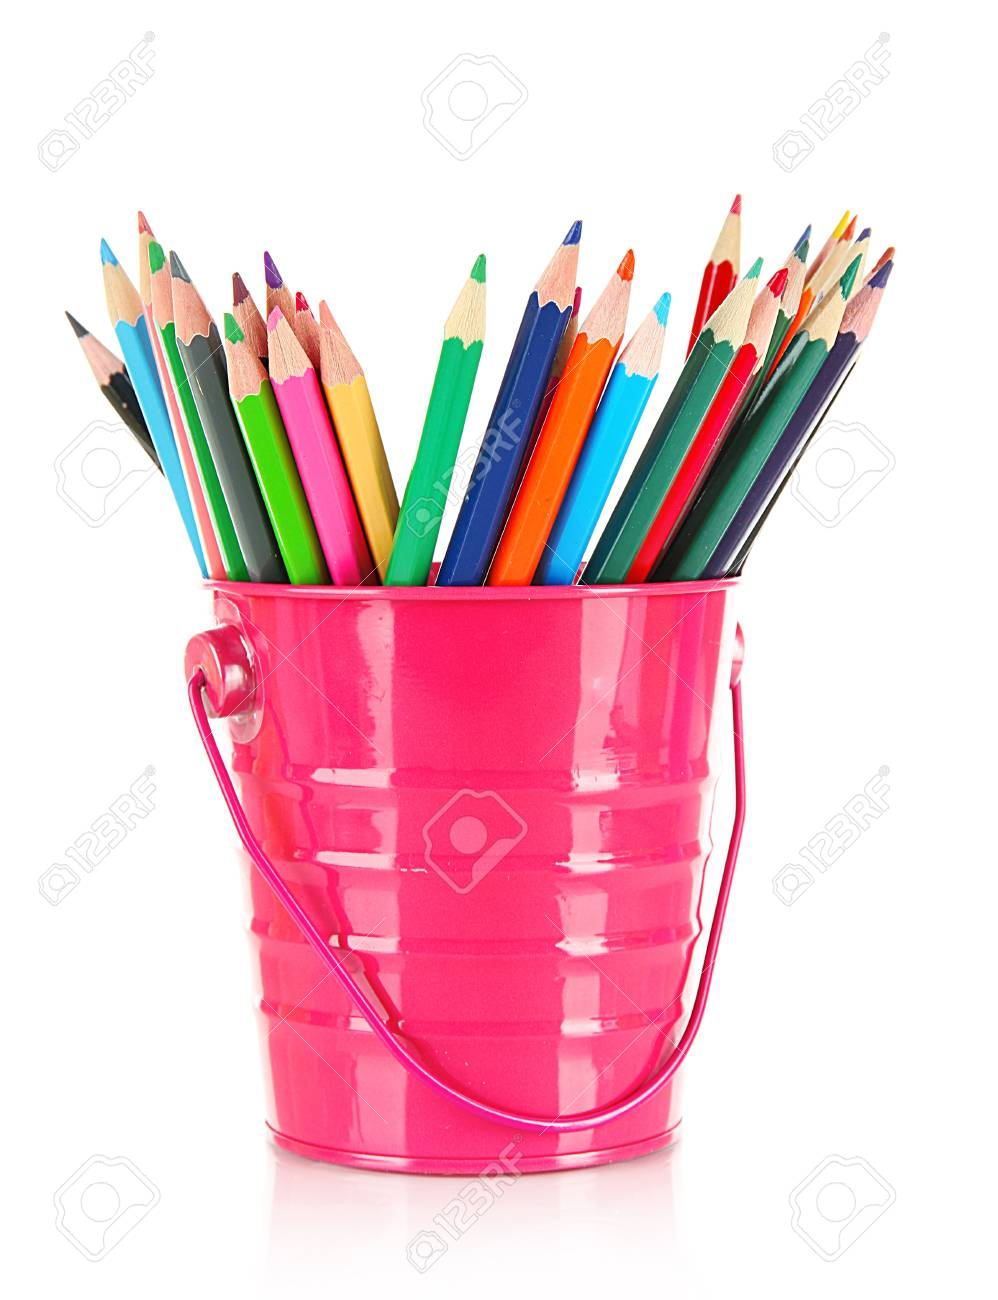 Colorful pencils in pail isolated on white Stock Photo - 18315960